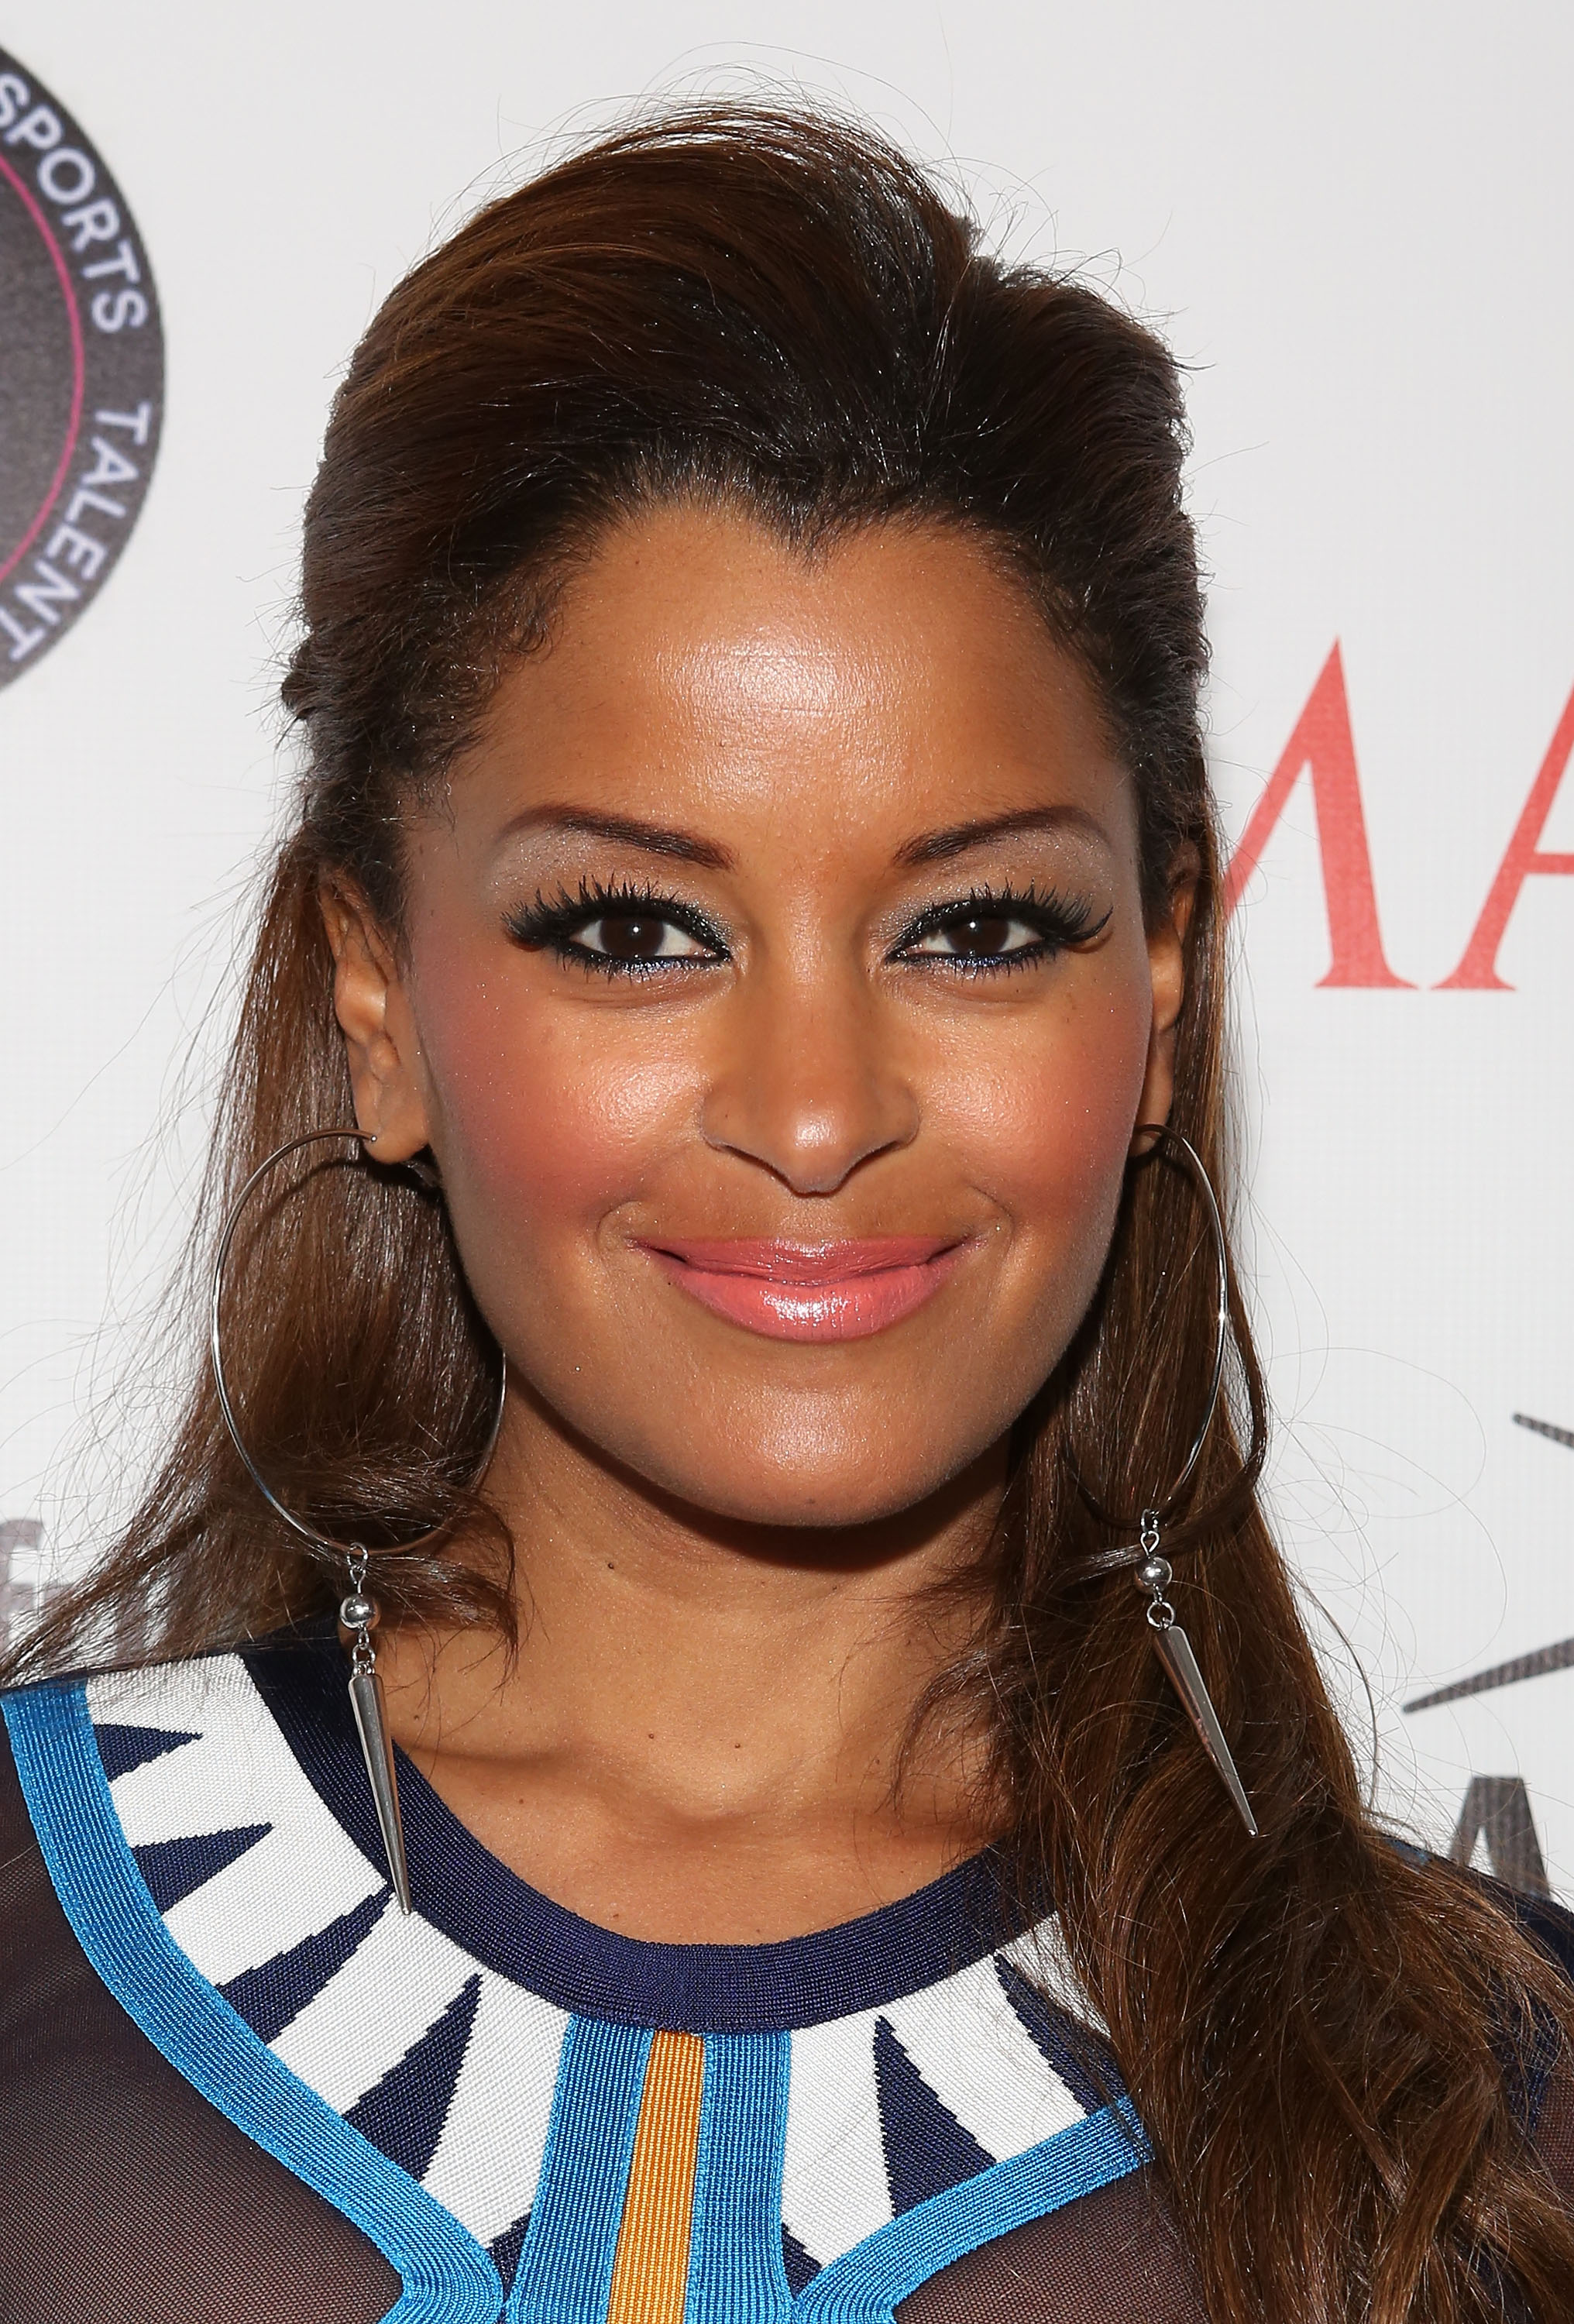 Instagram Claudia Jordan naked (23 foto and video), Pussy, Paparazzi, Instagram, bra 2018